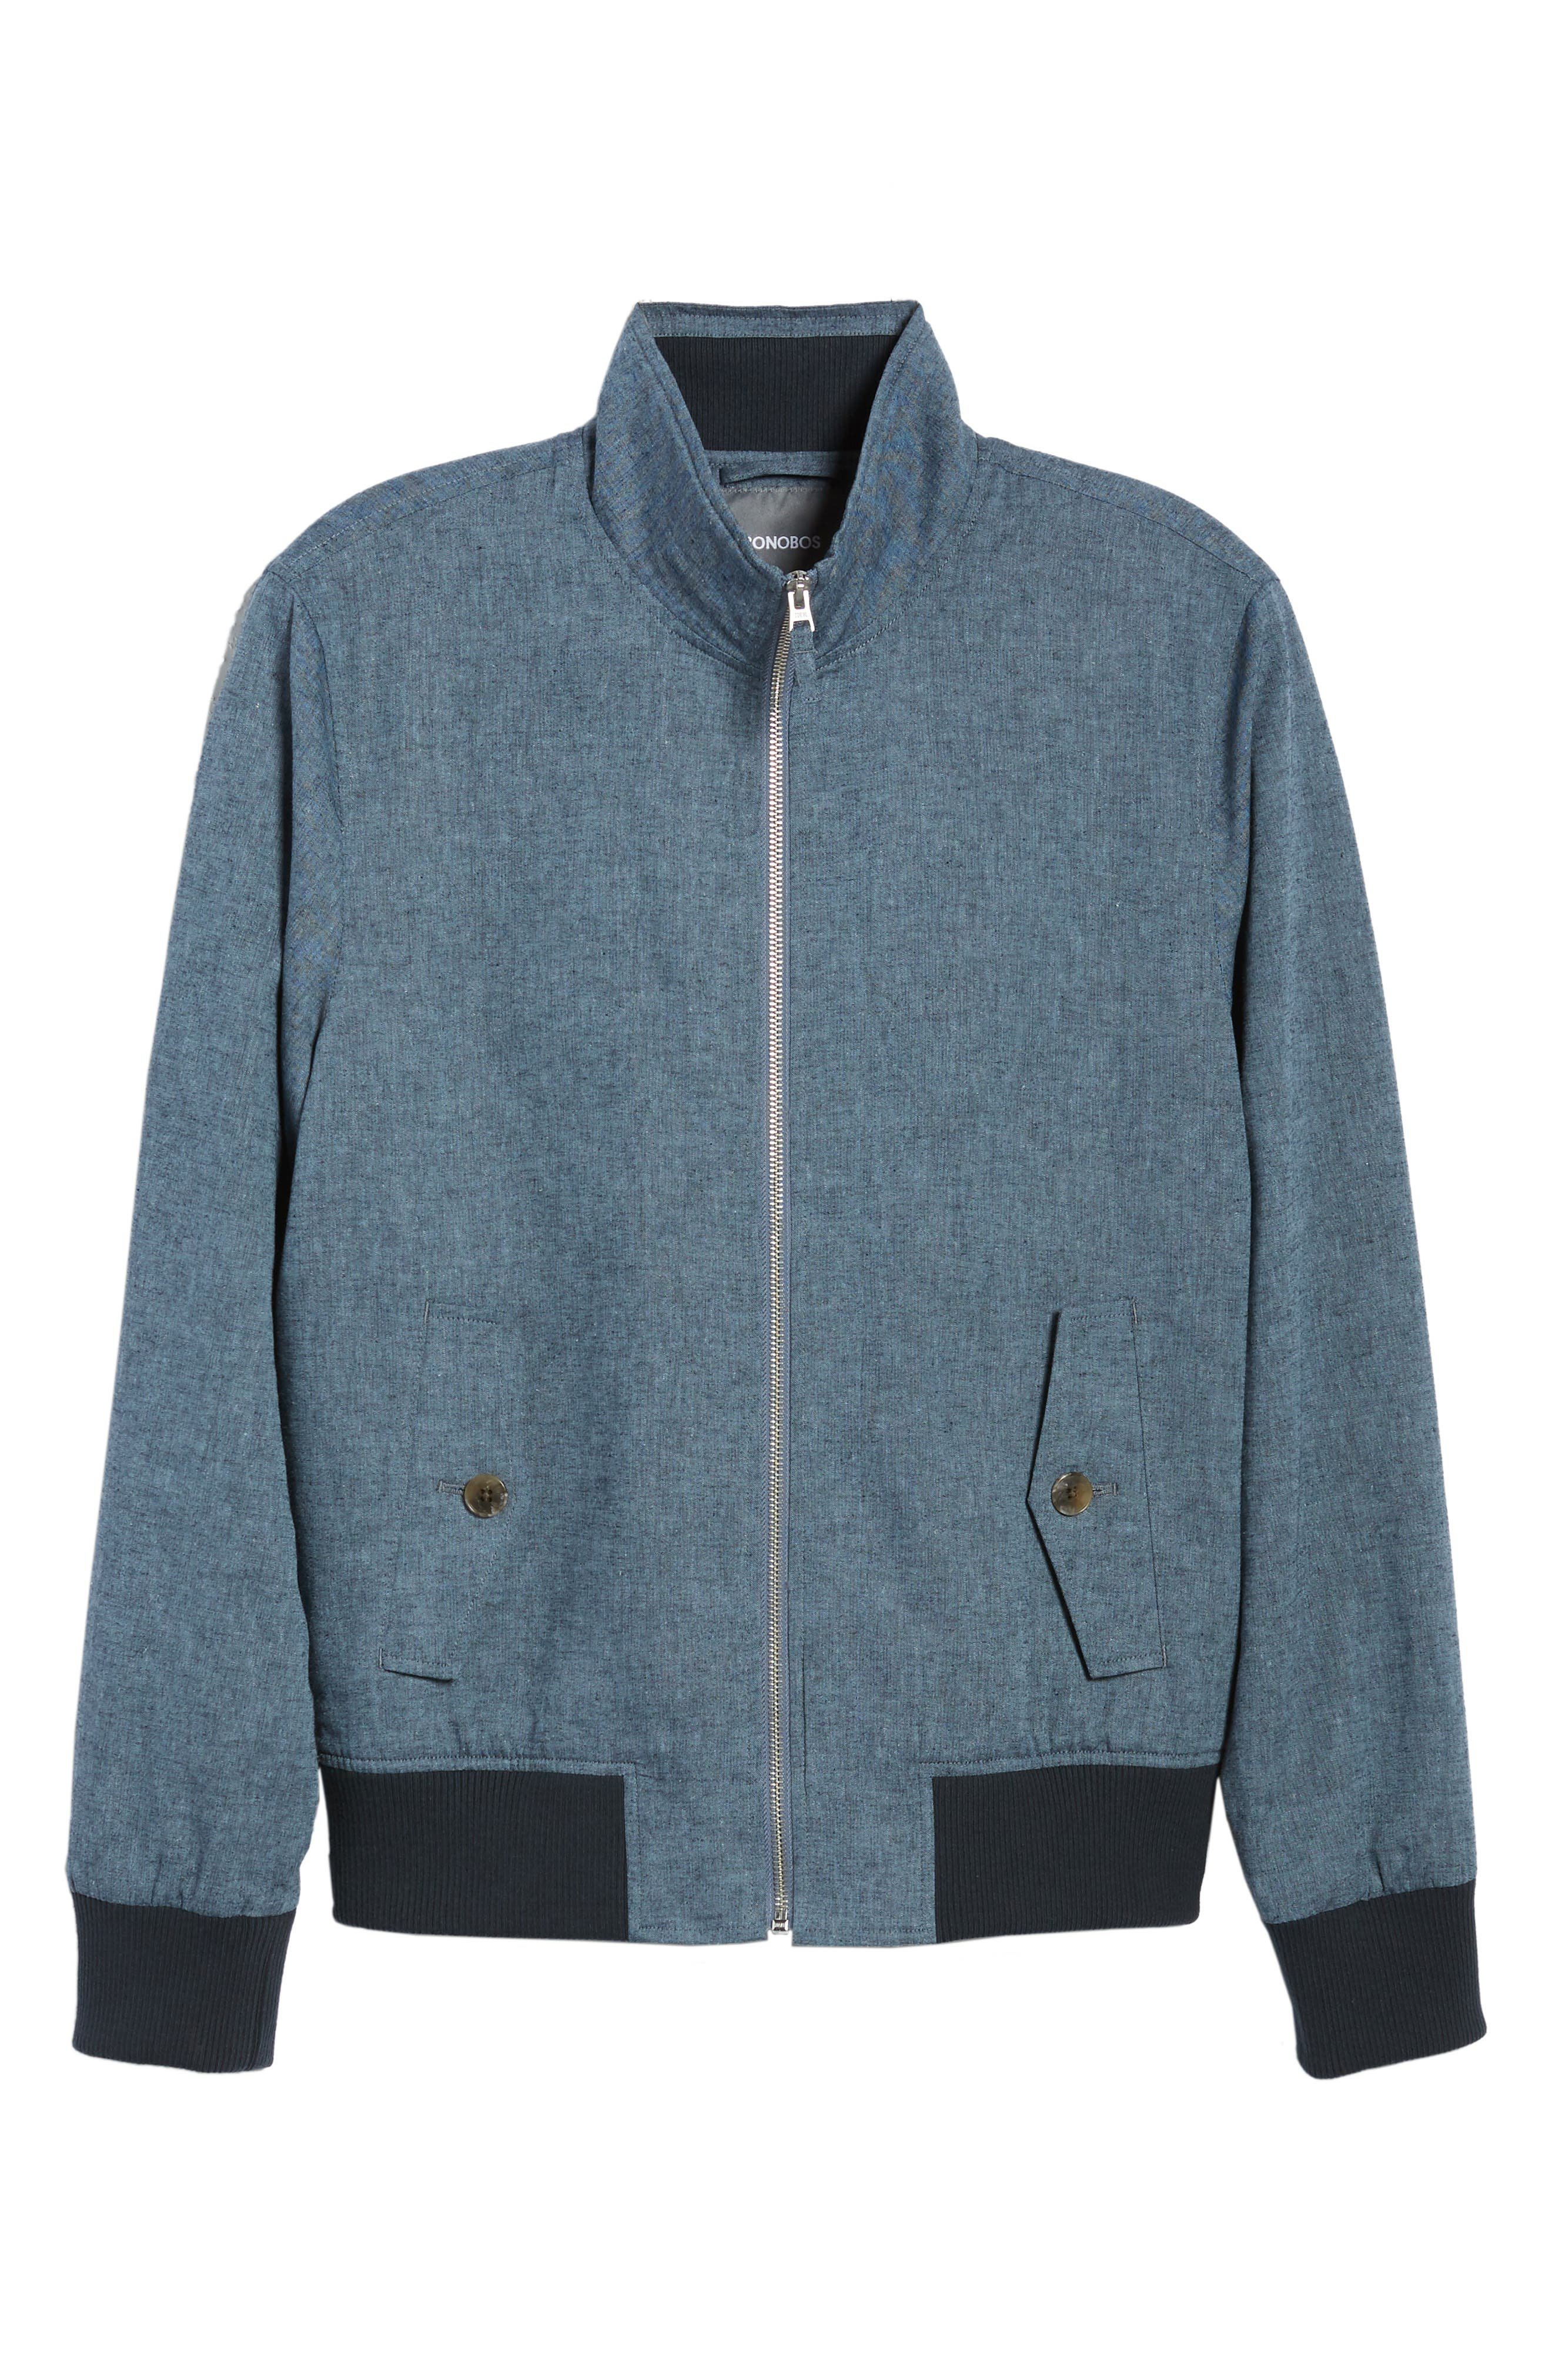 Linen & Cotton Chambray Bomber Jacket,                             Alternate thumbnail 6, color,                             Solid - Chambray